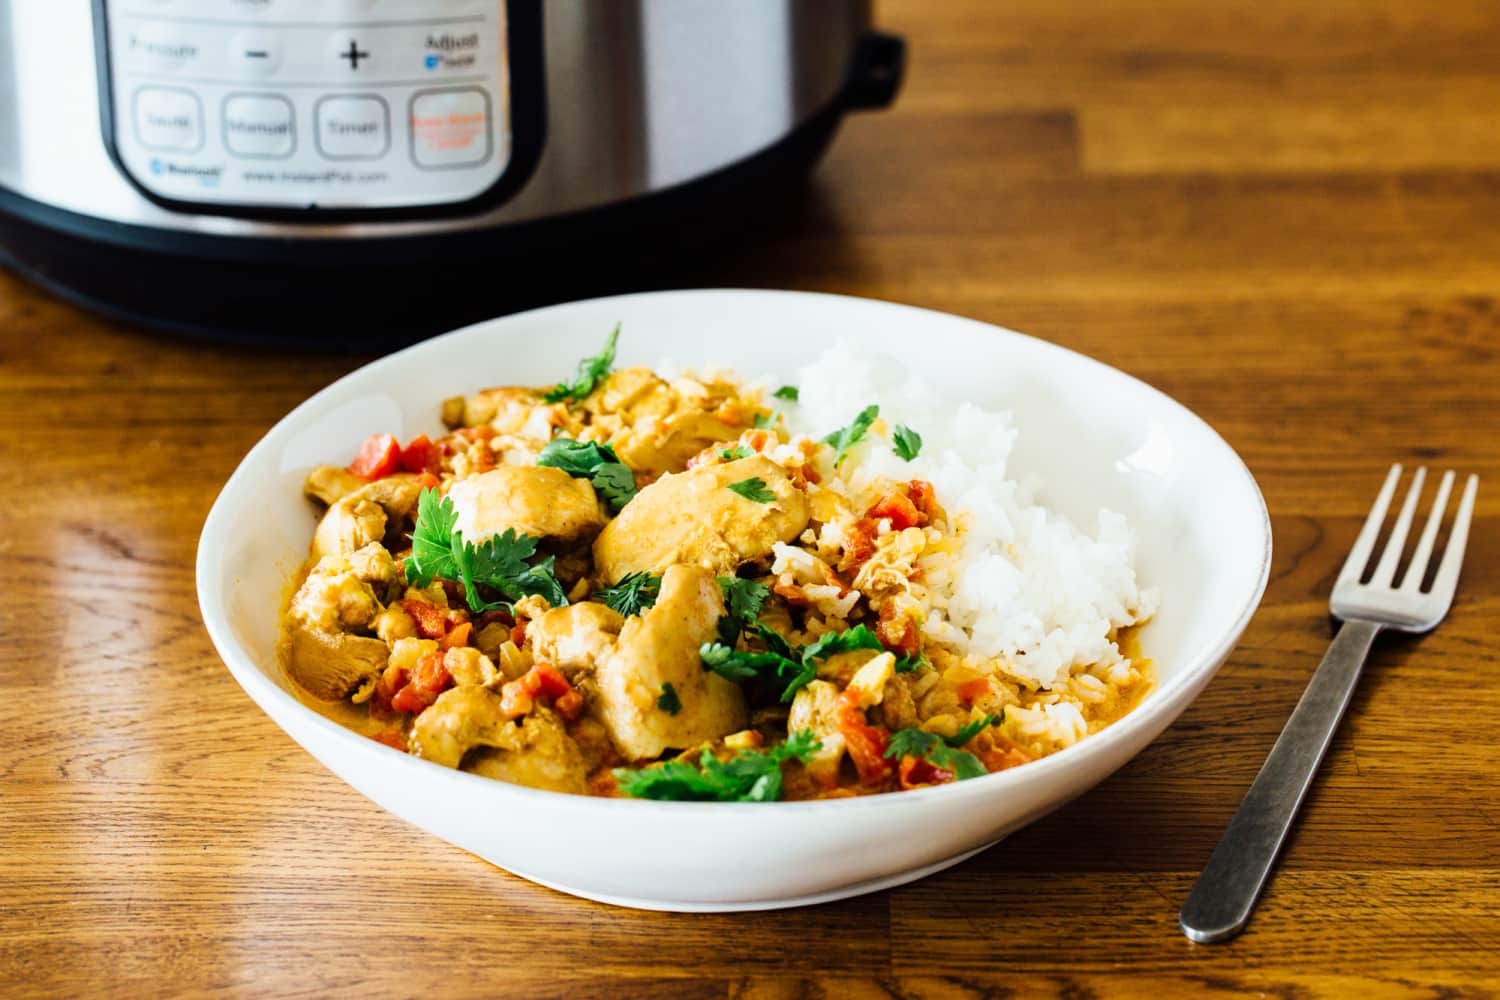 22 Recipes to Make with Your New Instant Pot